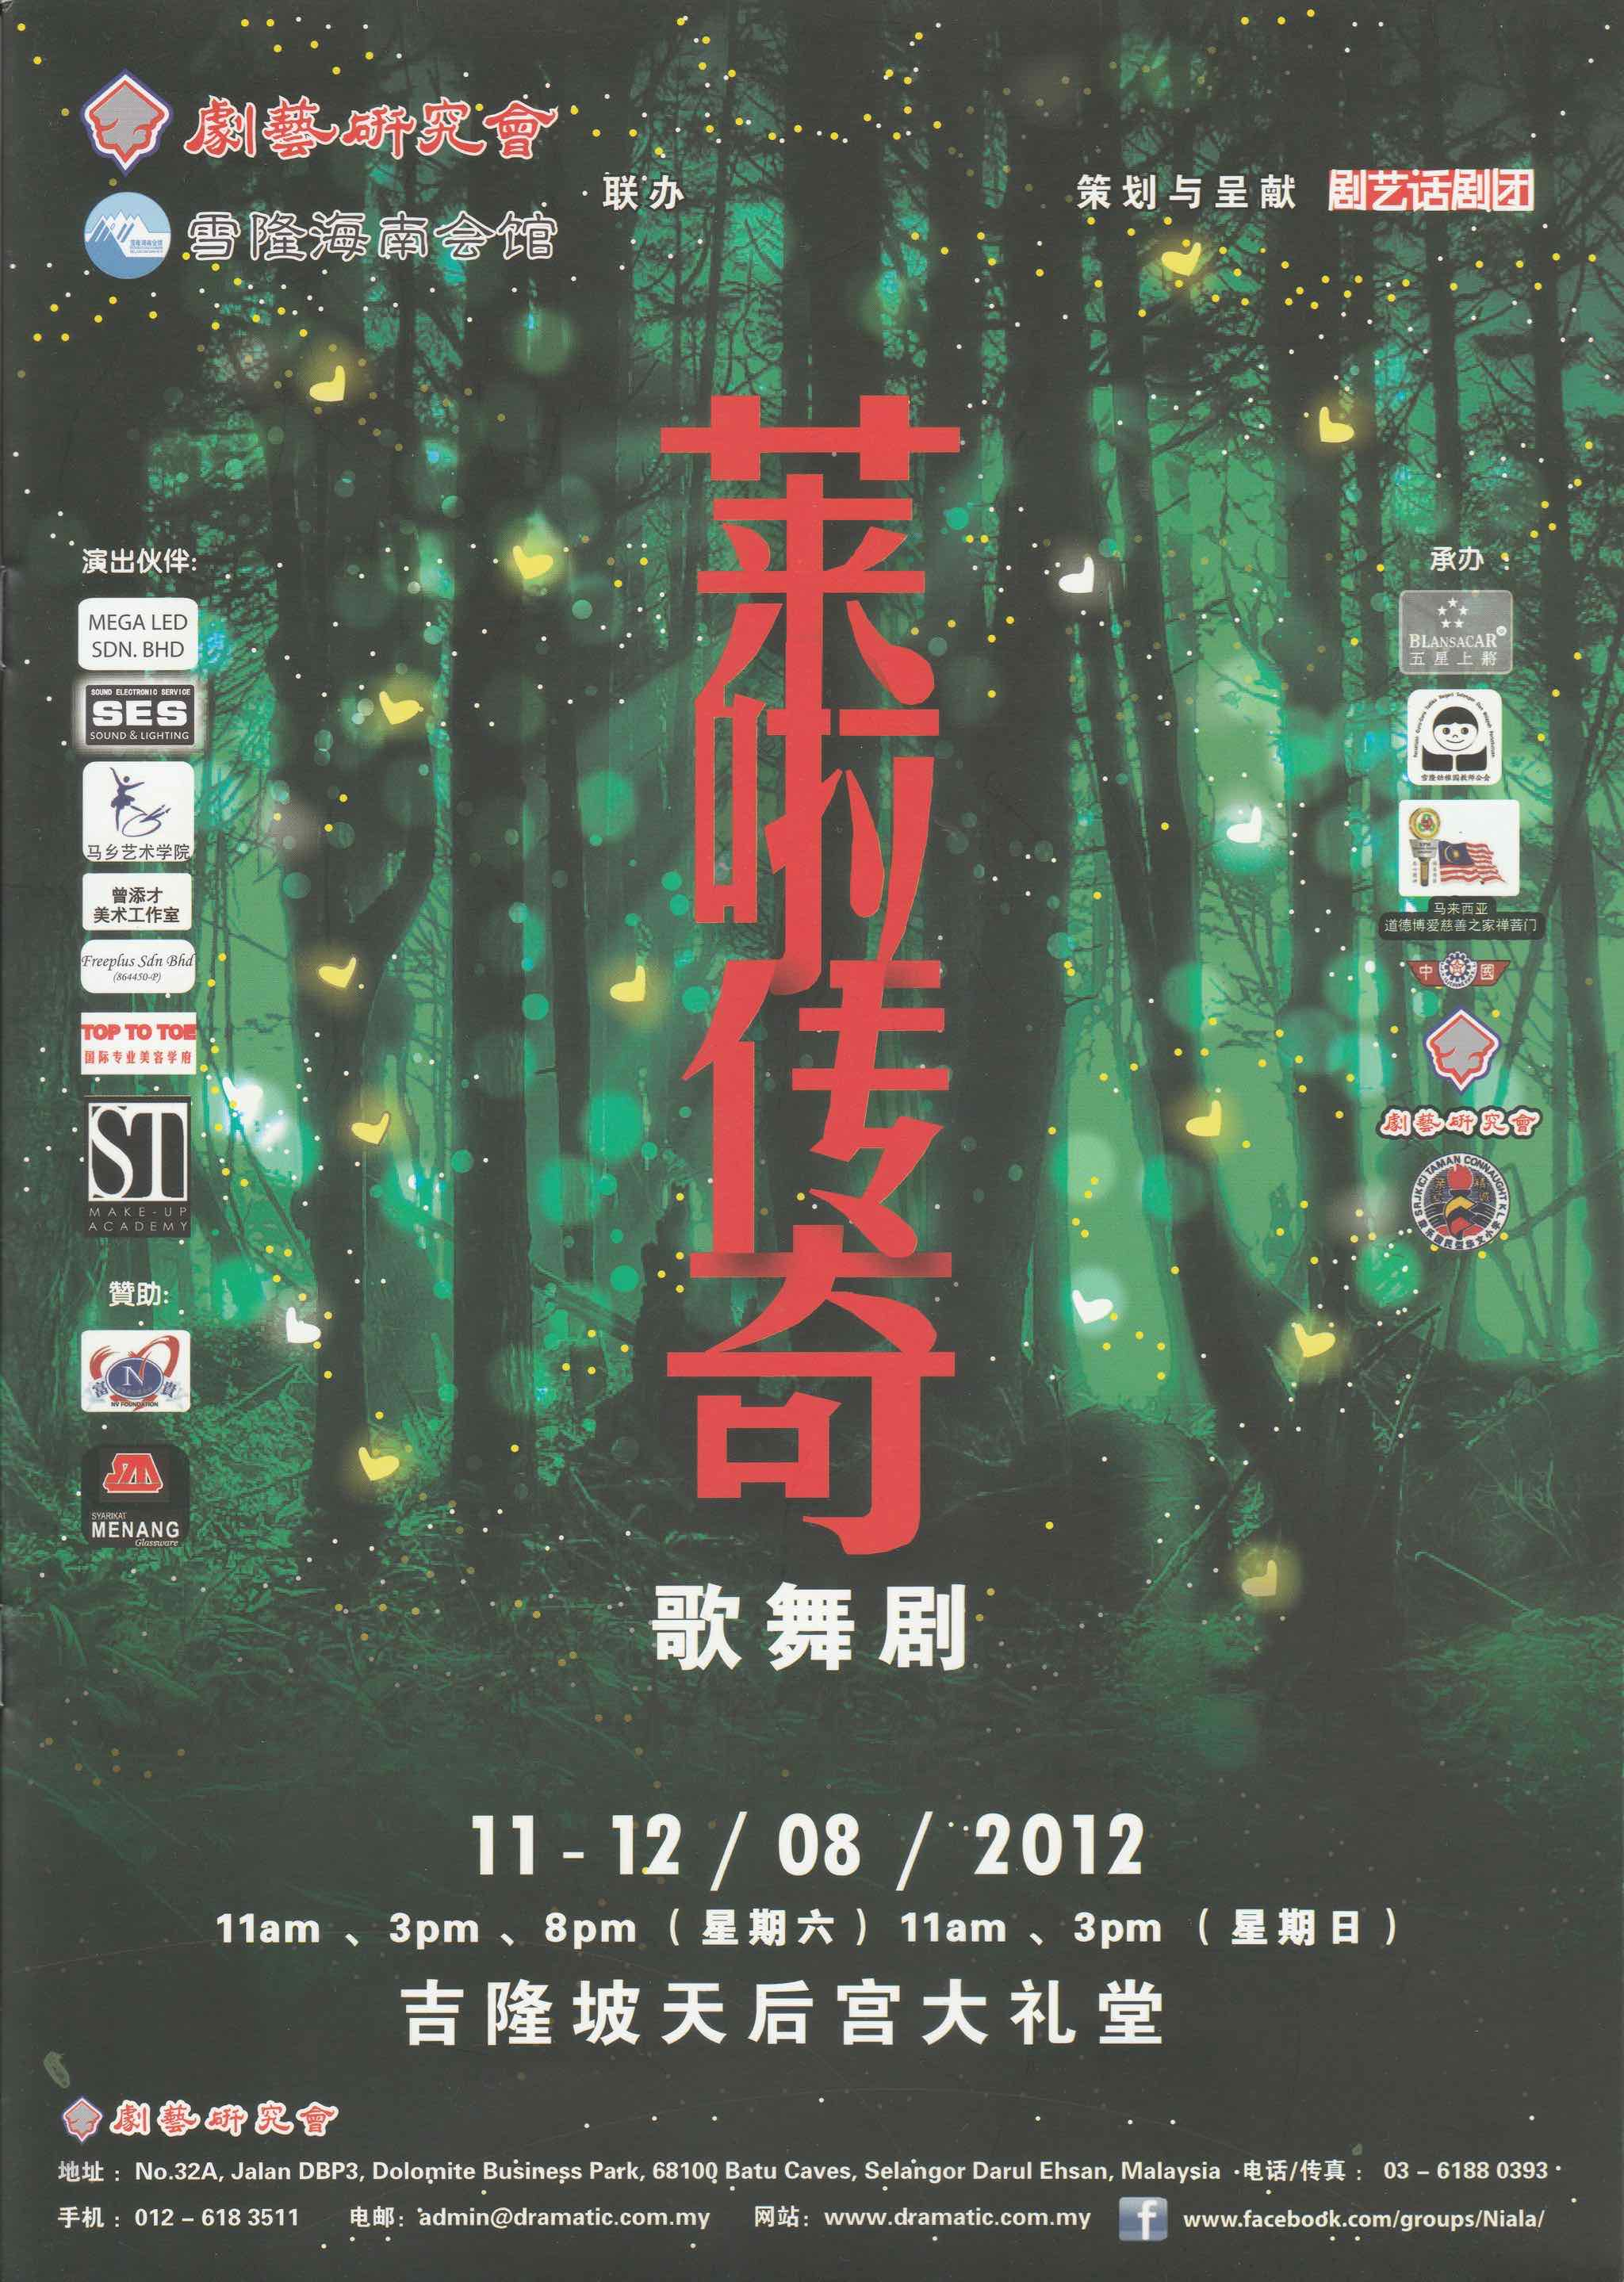 2012 Lynas Legend Program Cover